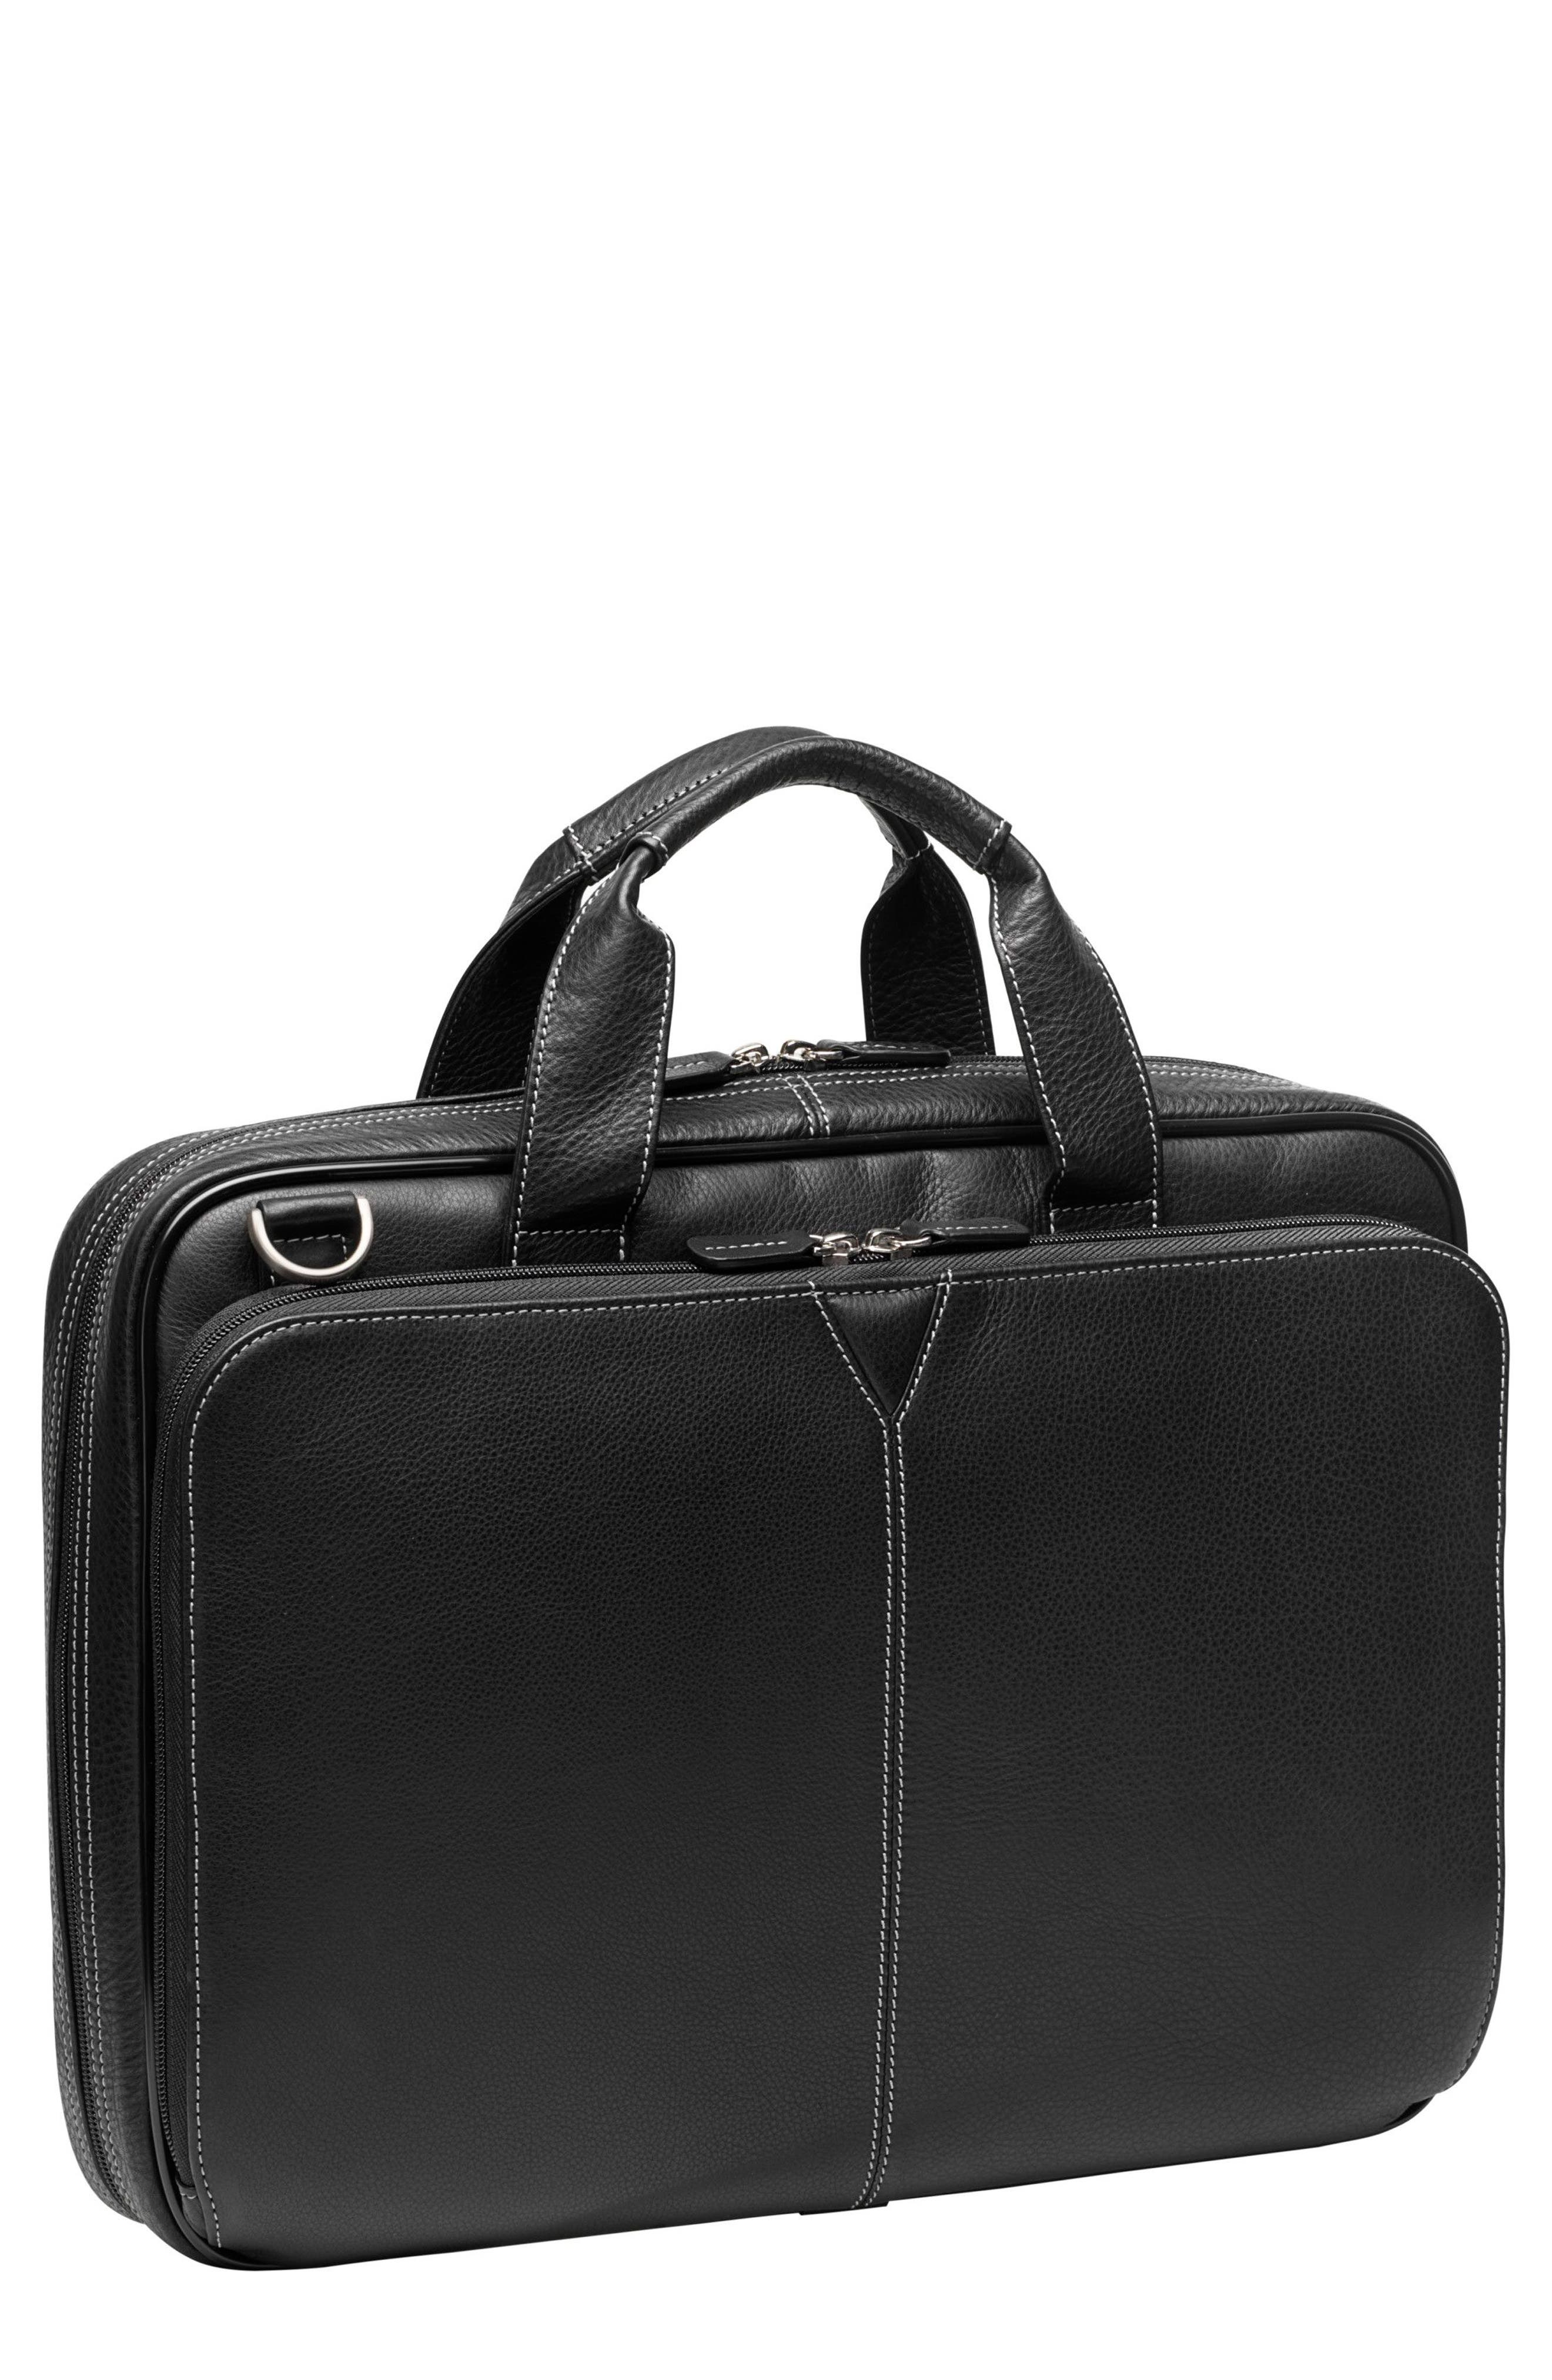 JOHNSTON & MURPHY Leather Briefcase, Main, color, BLACK